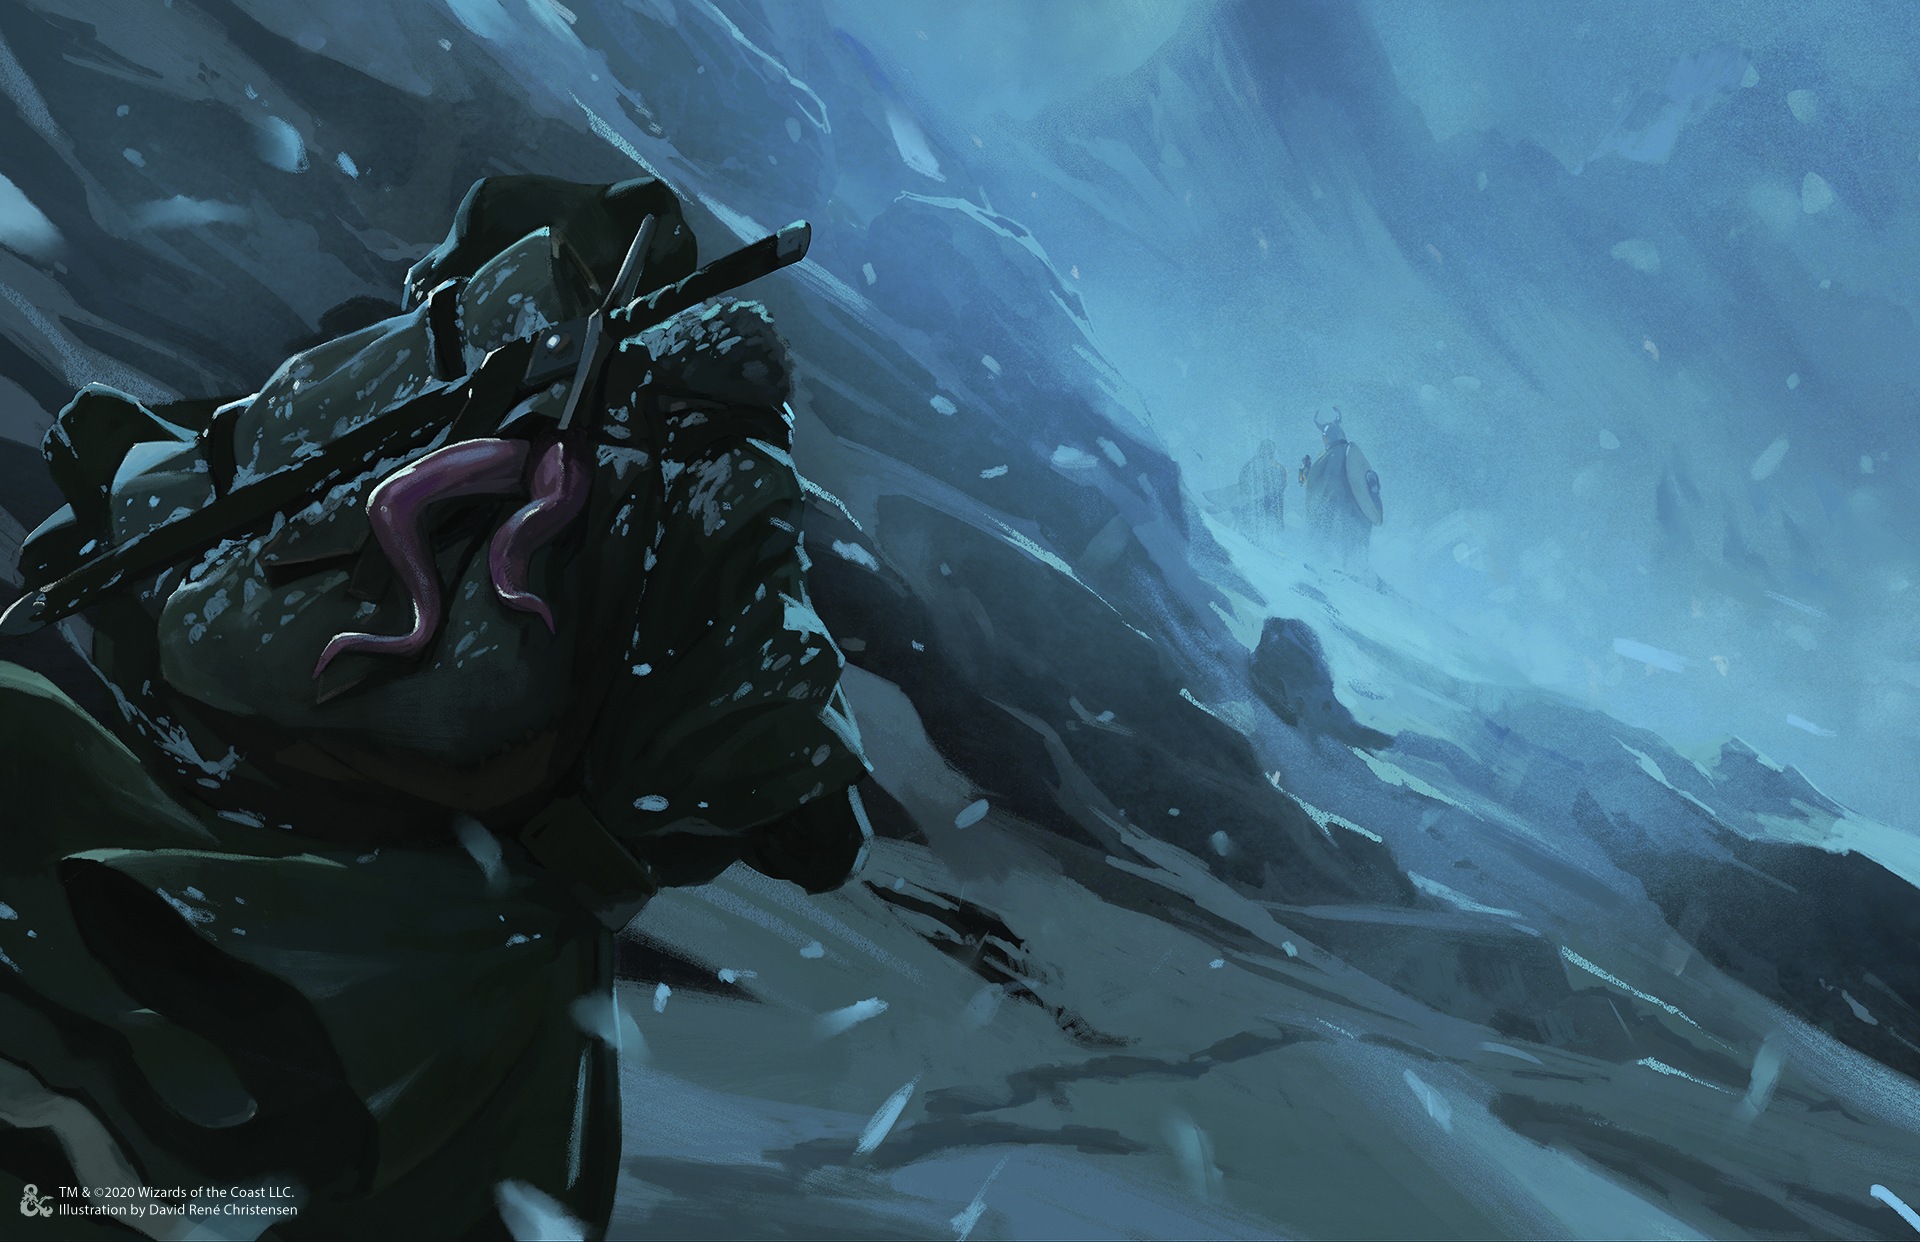 5E D&D Icewind Dale Rime of the Frostmaiden